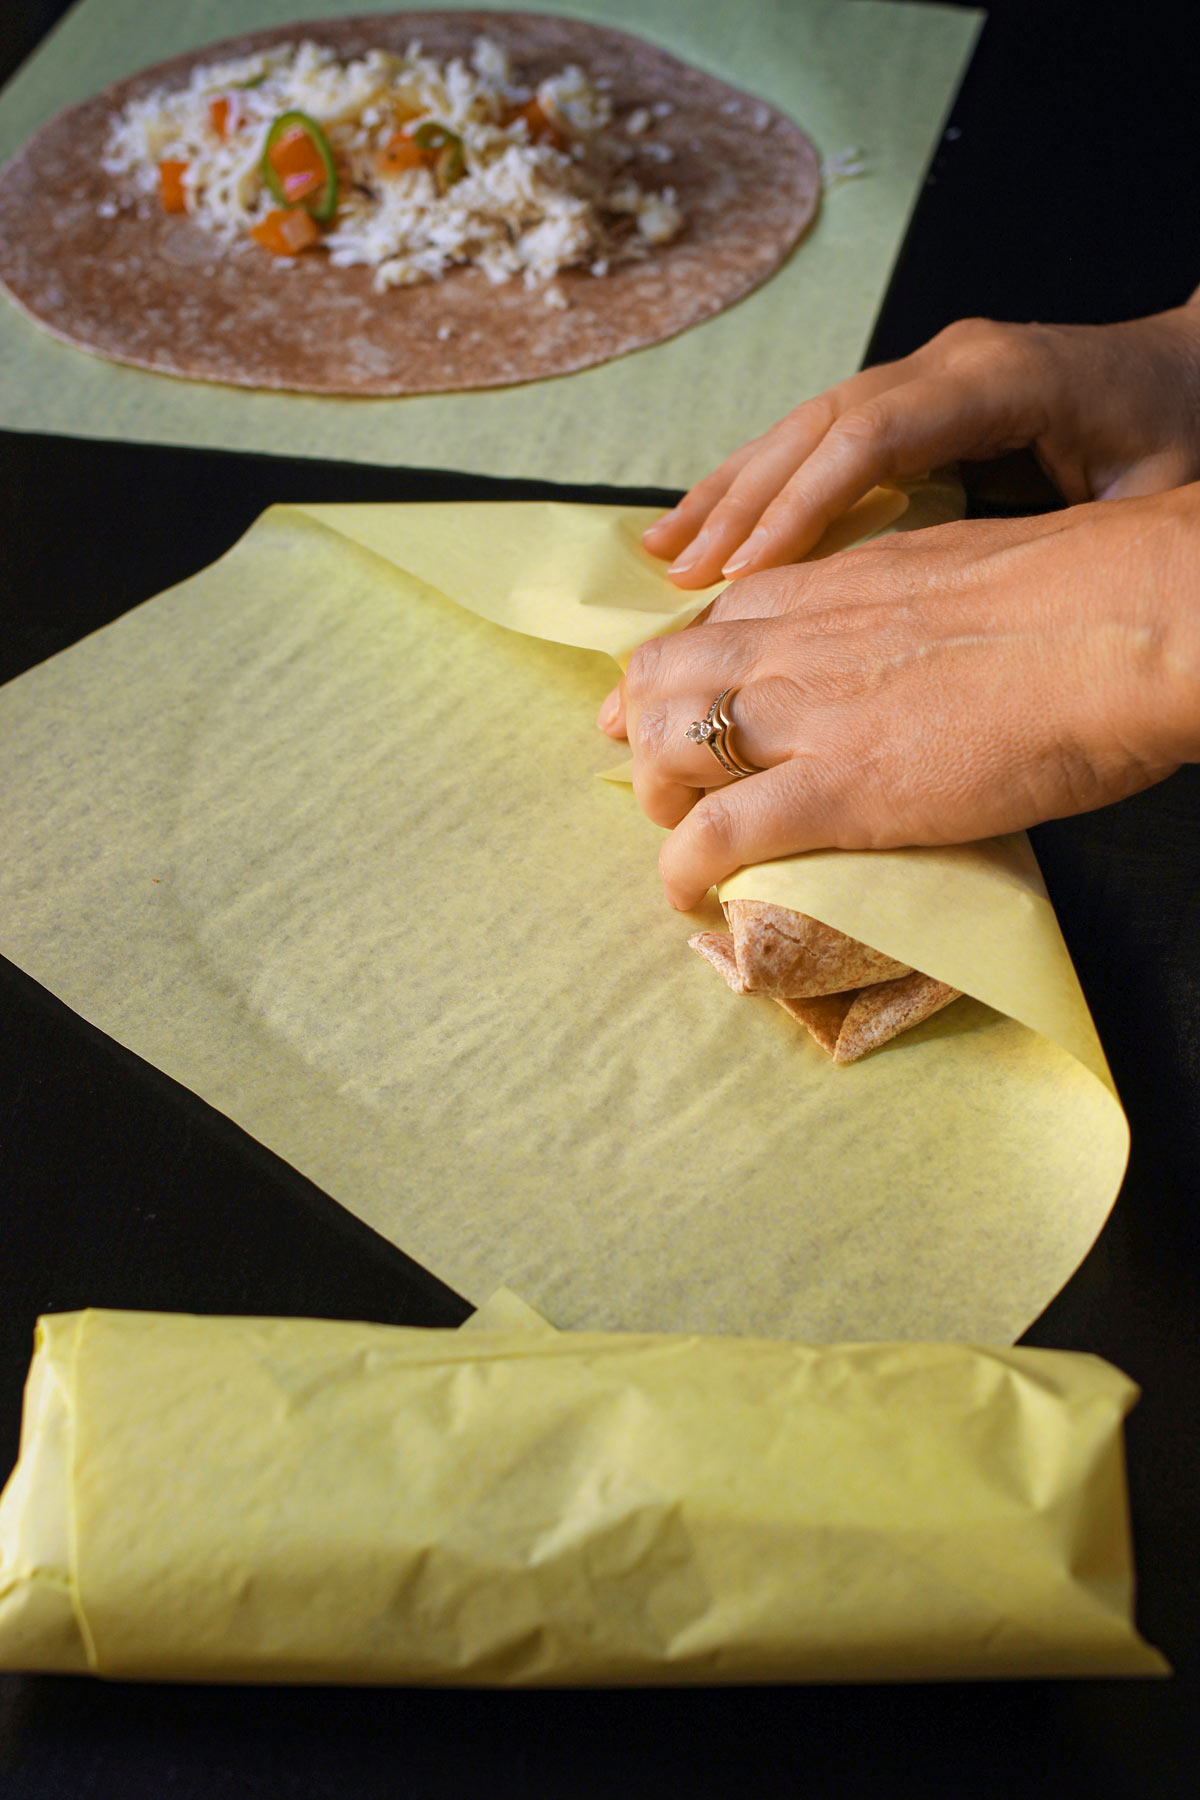 hands wrapping the rolled burrito in a deli wrap.